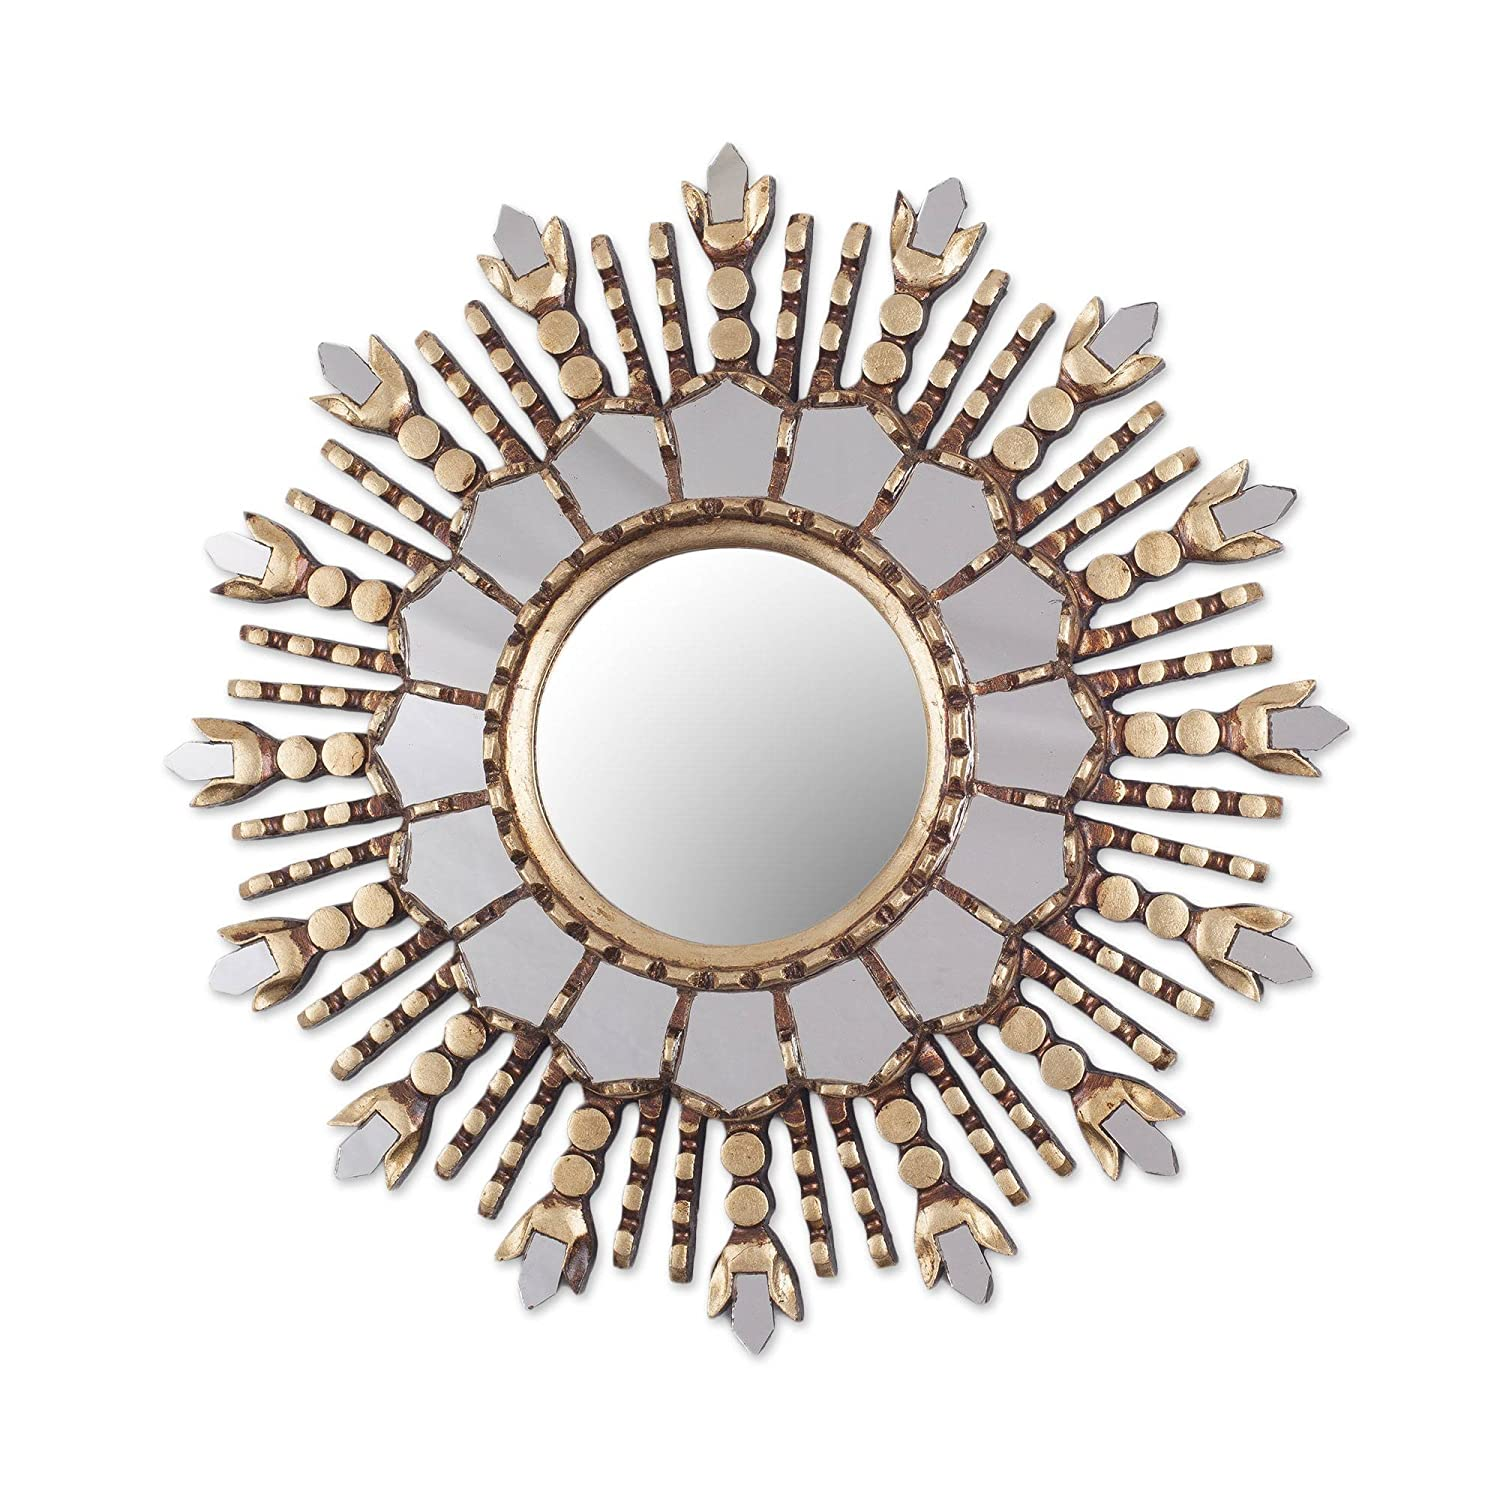 NOVICA Cedar Wood and Bronze Leaf Wall Mounted Starburst Mirror, Cuzco Radiance'